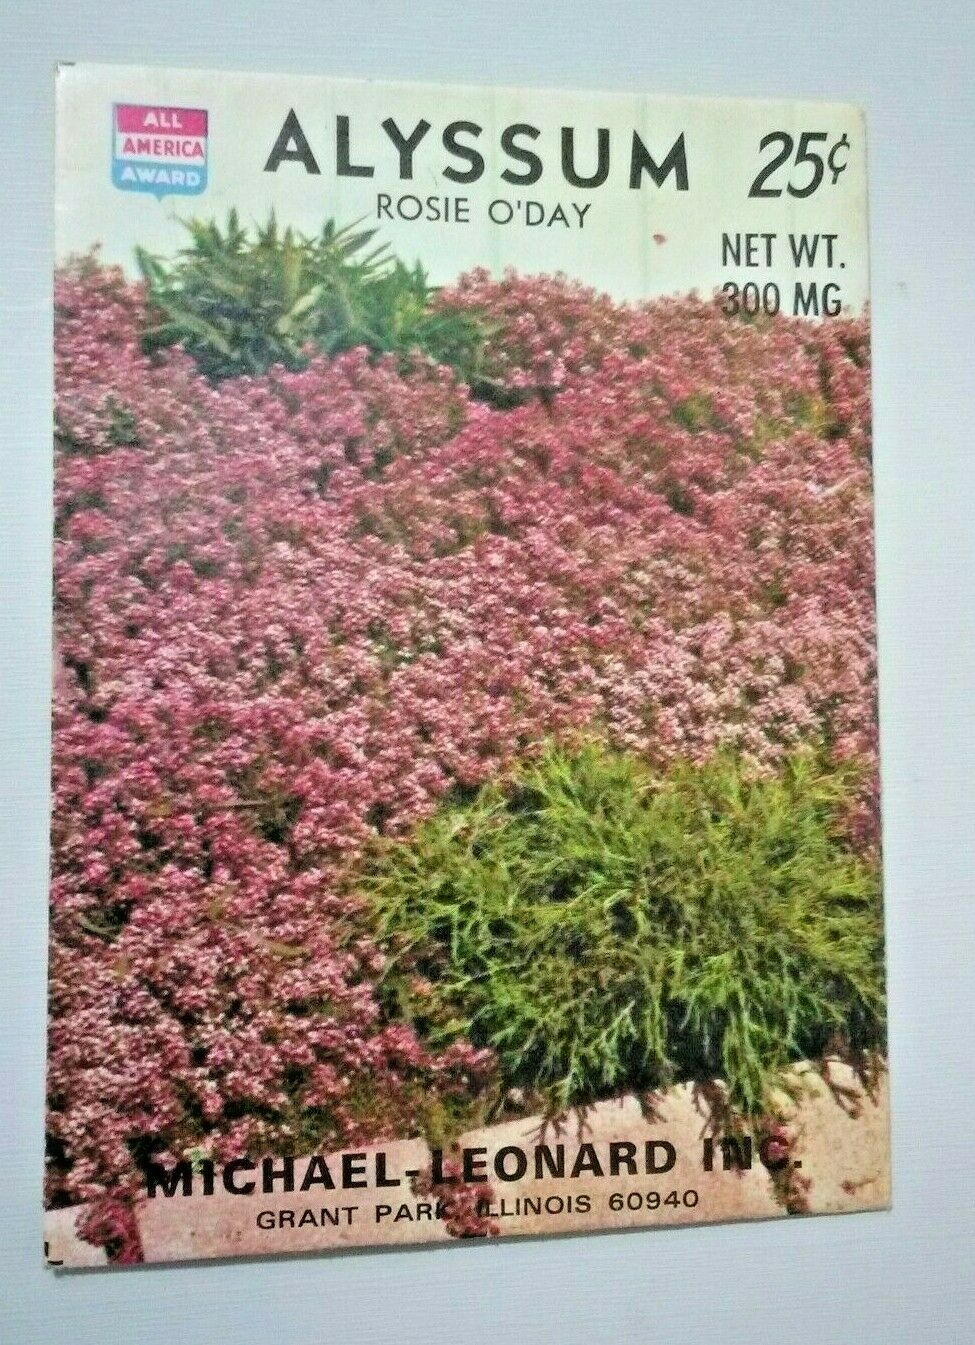 Vintage Seed PACKET For Art Display Alyssum Rosie O'Day